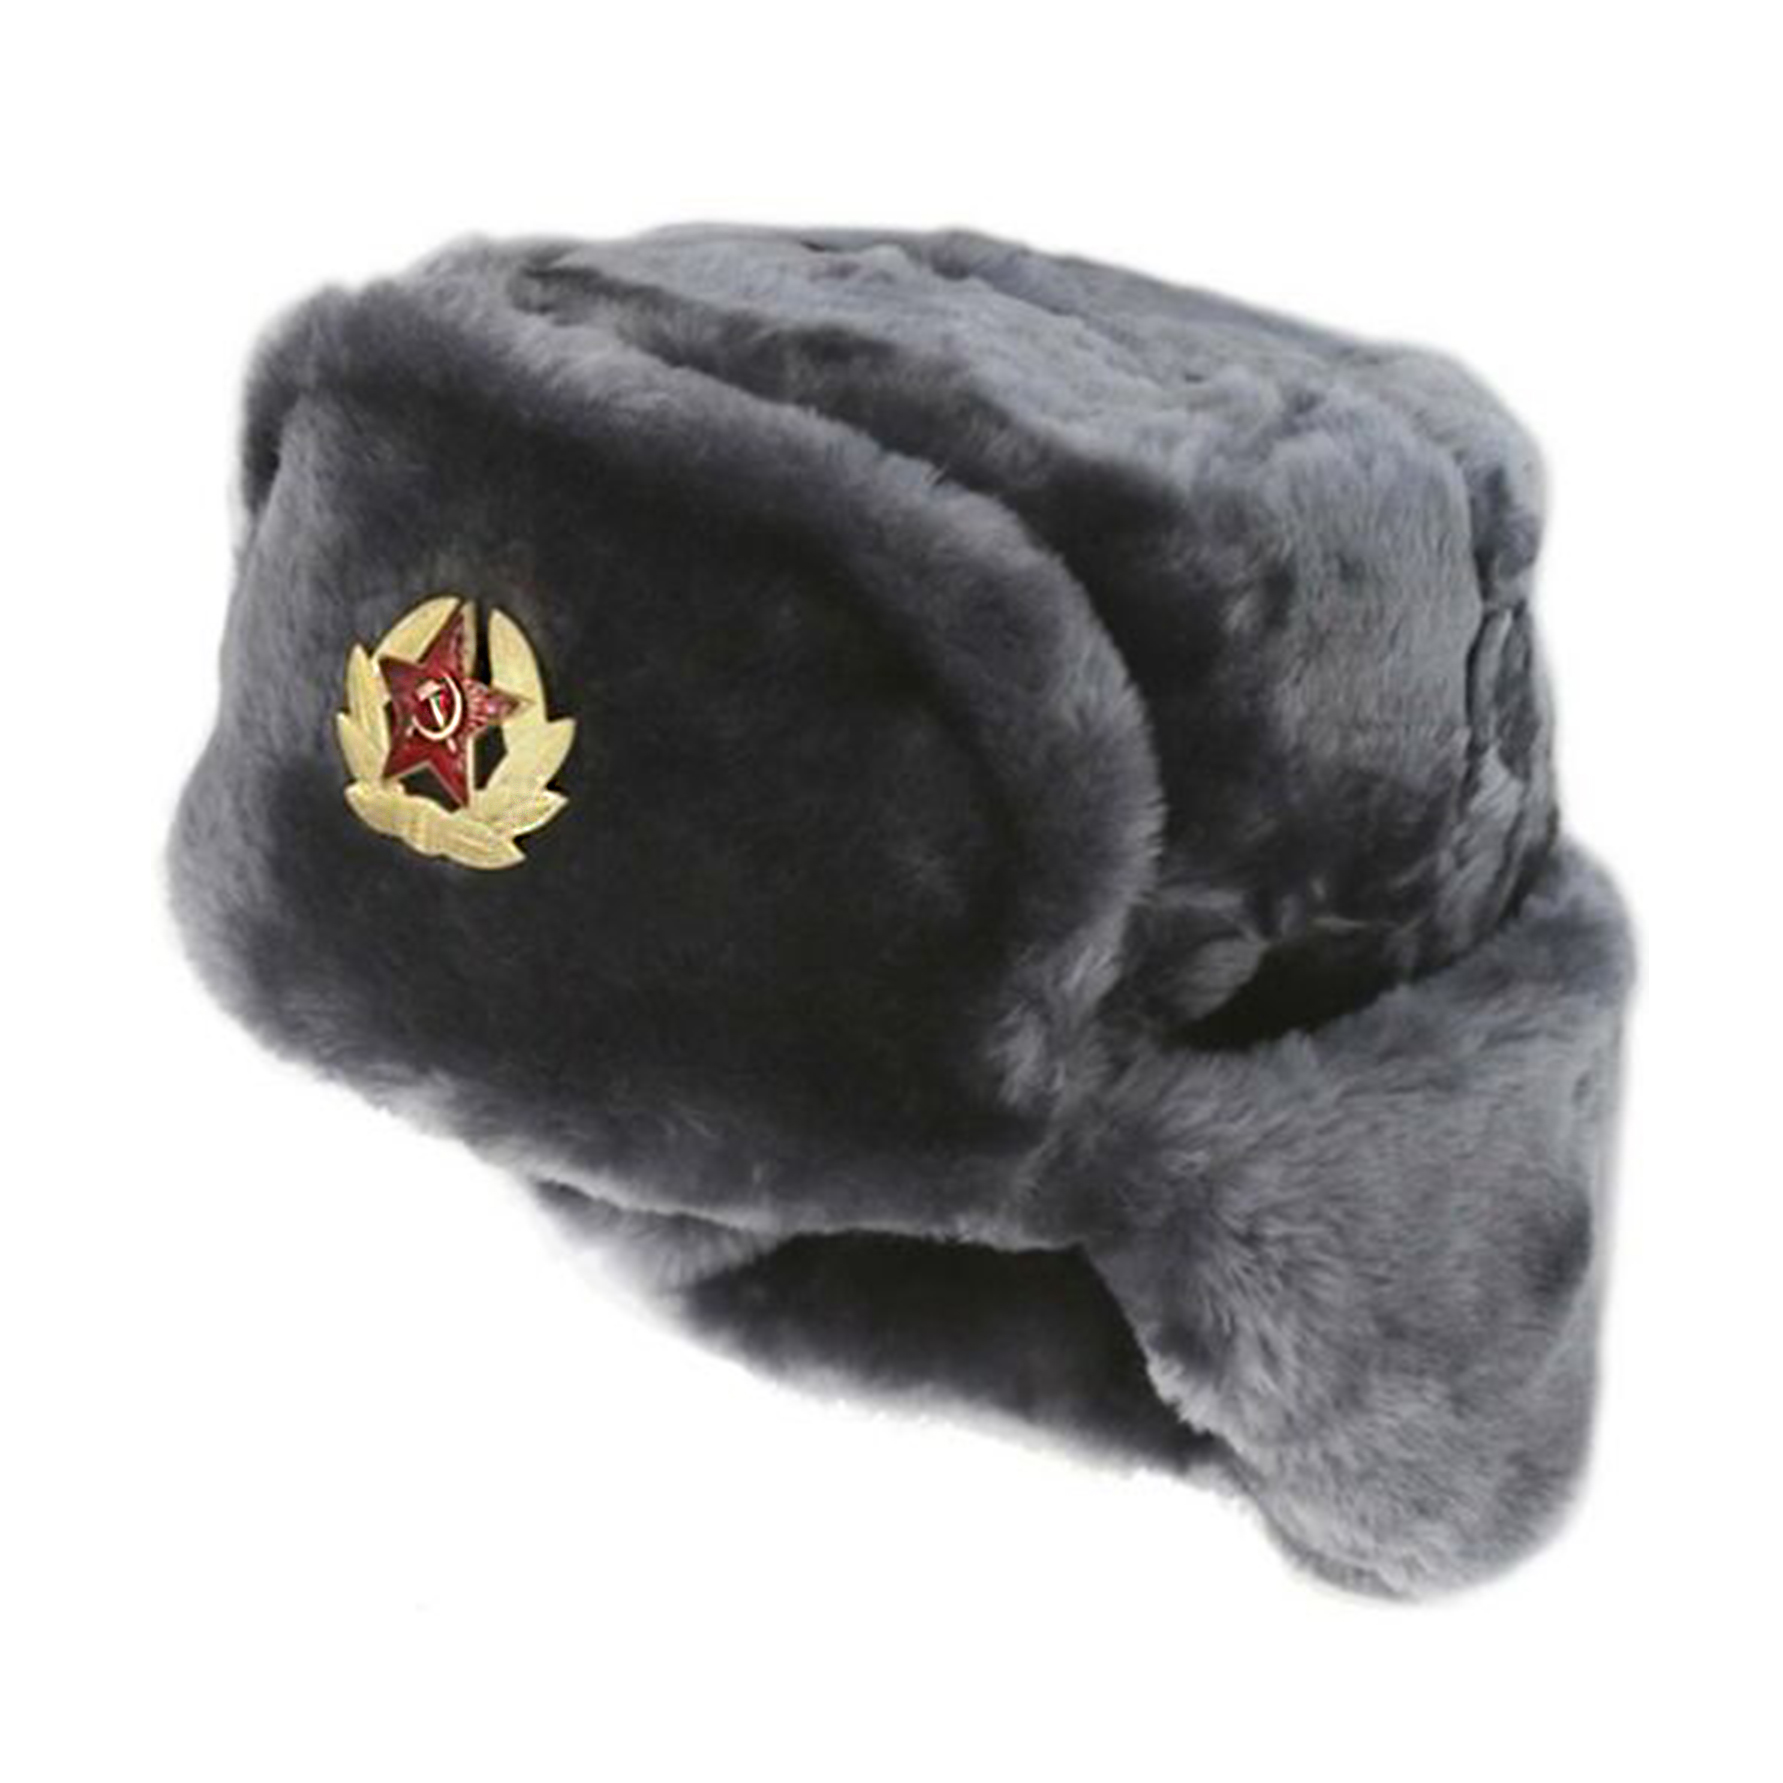 ce76fc03477e7 ... Russian Soviet Army Fur Military Cossack Ushanka Hat with Soviet Army  Soldier Insignia